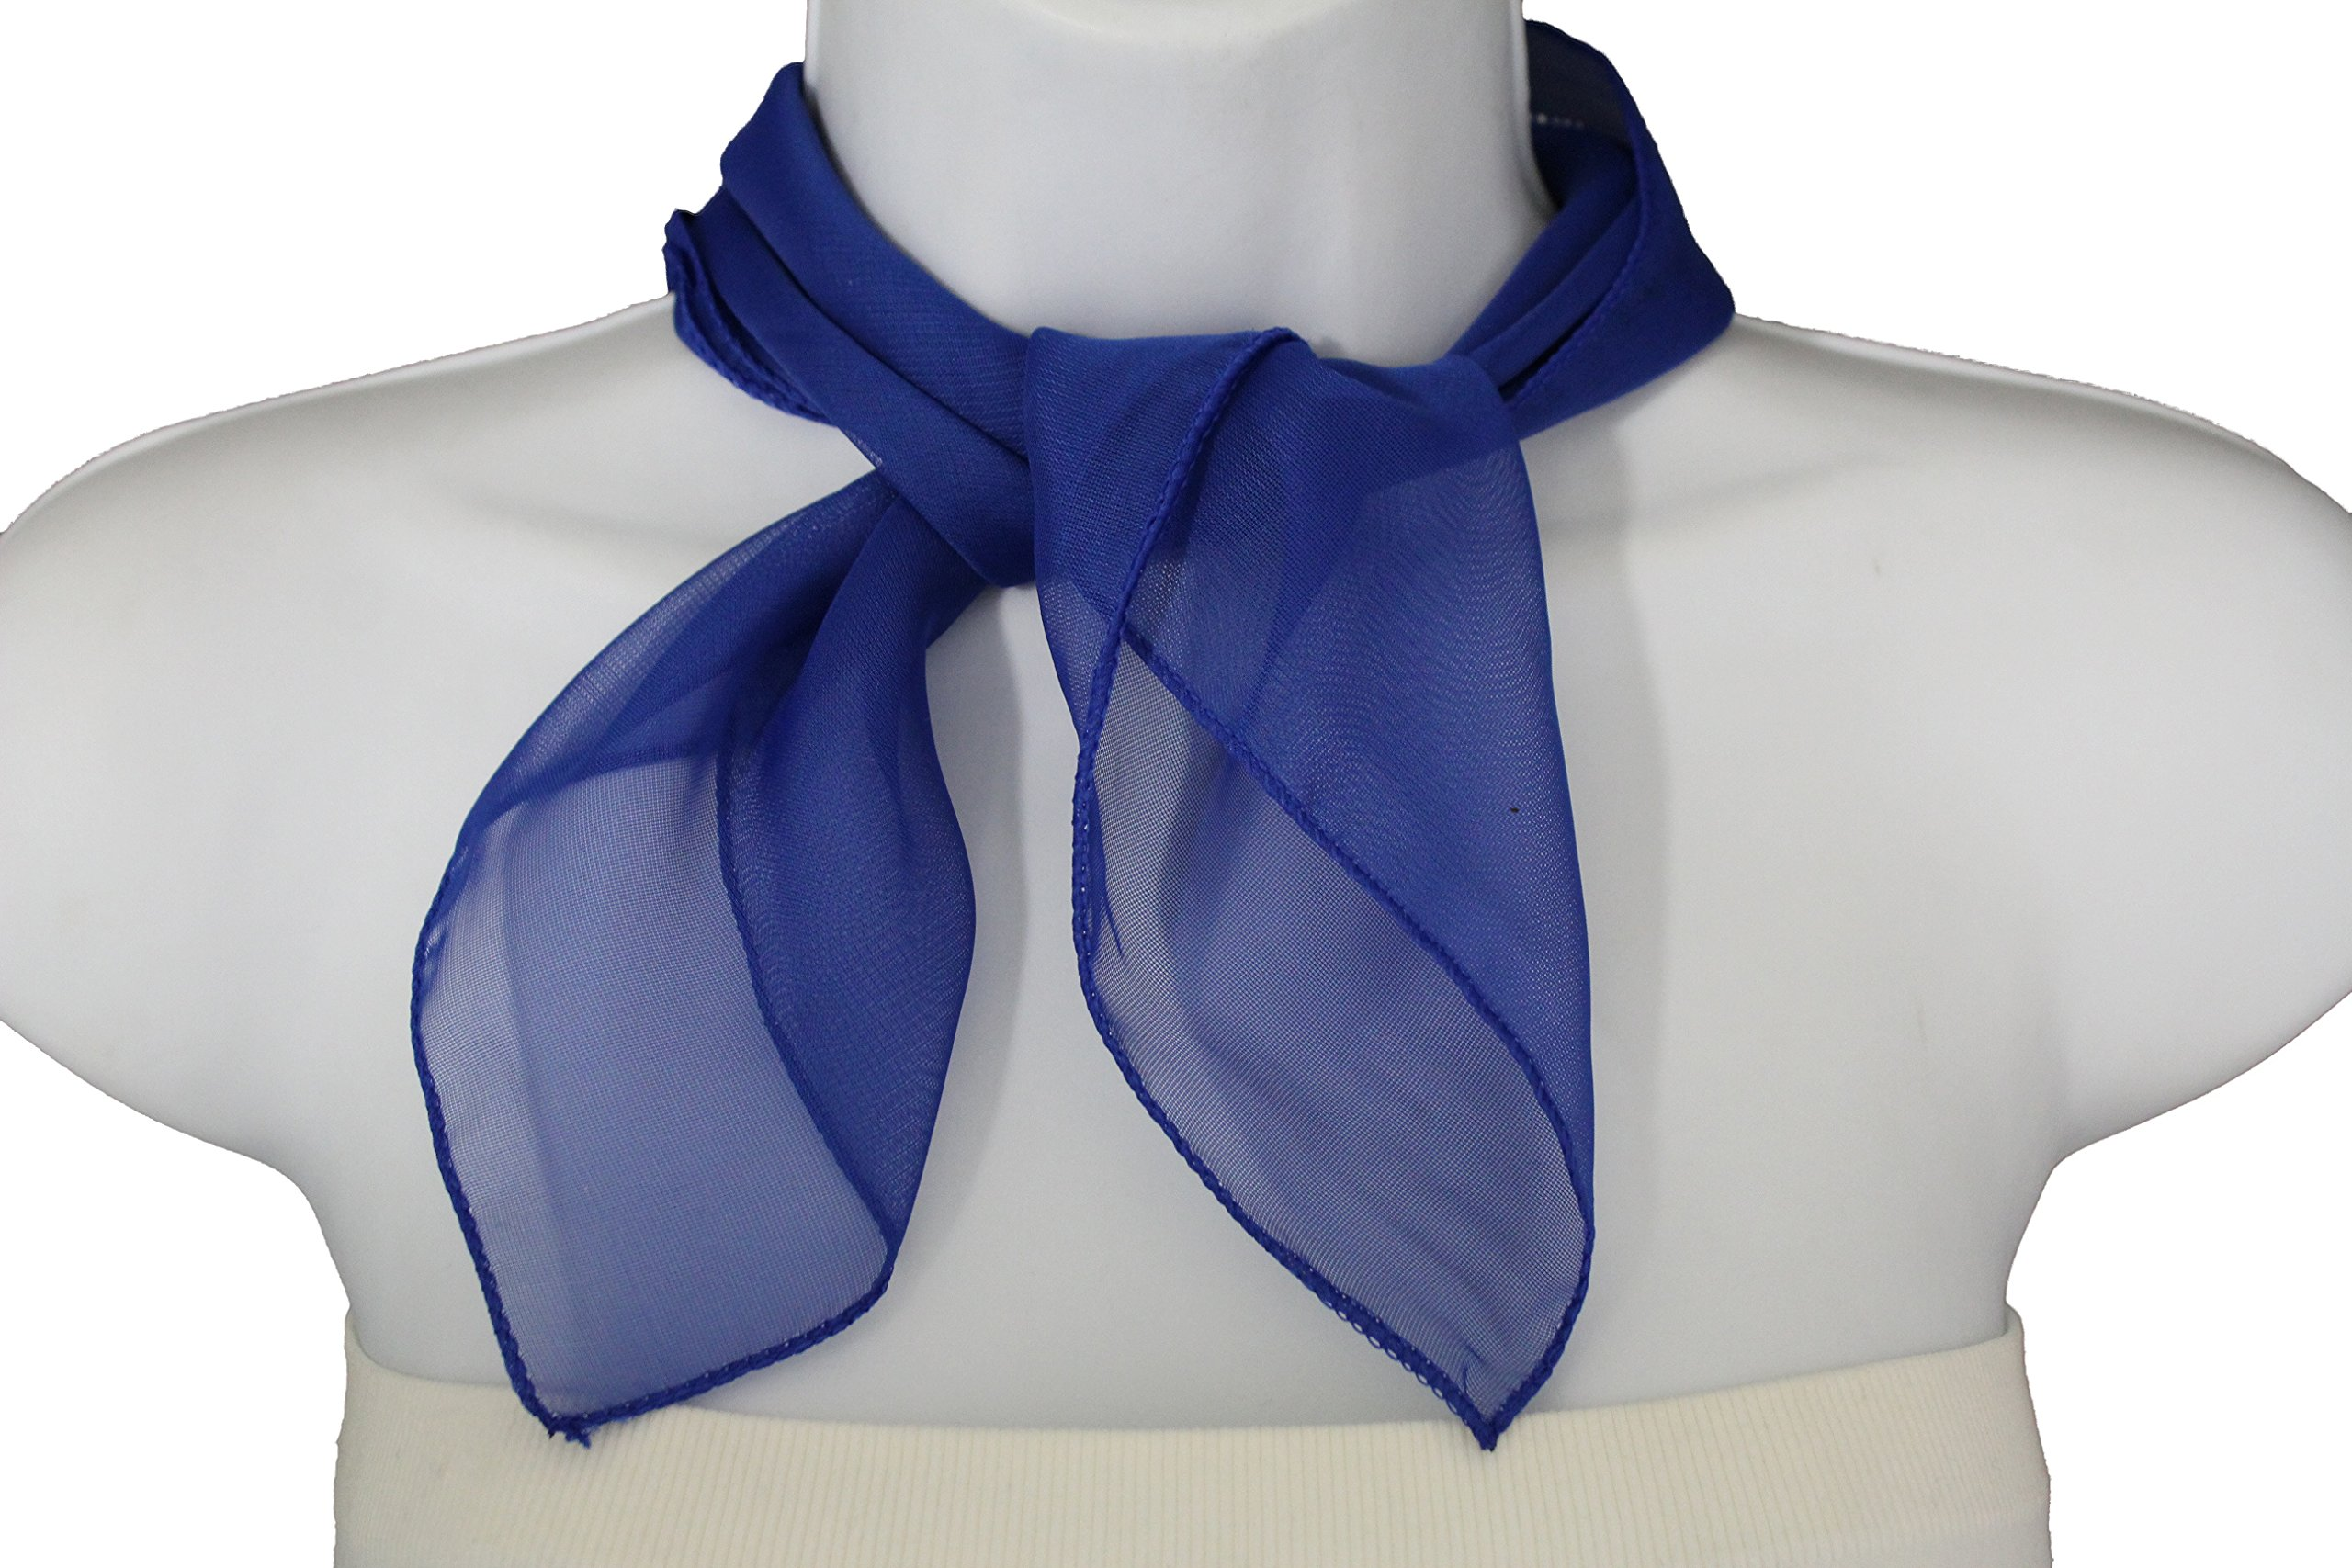 TFJ Women Fashion Neck Scarf Sheer Soft Basic Fabric Pocket Square Fun Style (Blue)